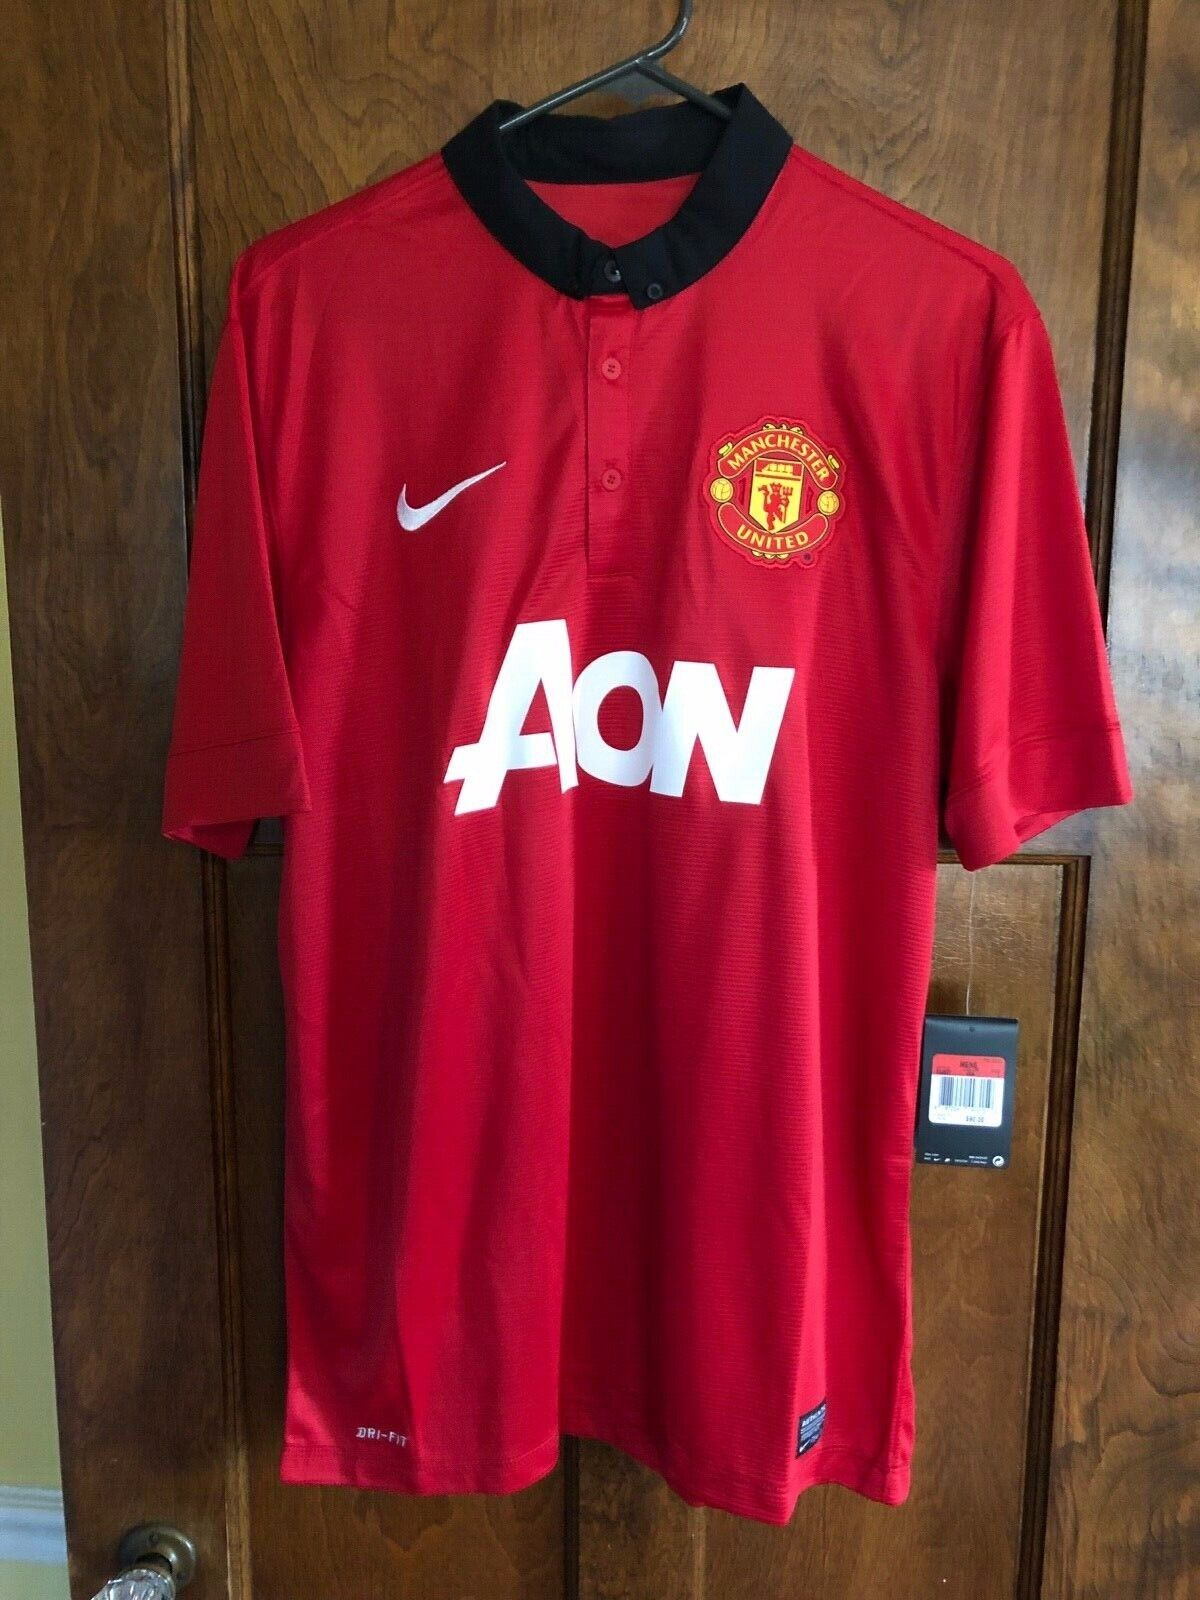 1b70b6380c0 NIKE DRI-FIT NWT MEN LARGE MANCHESTER UNITED POLO SHIRT AON MLS SOCCER  FUTBOL